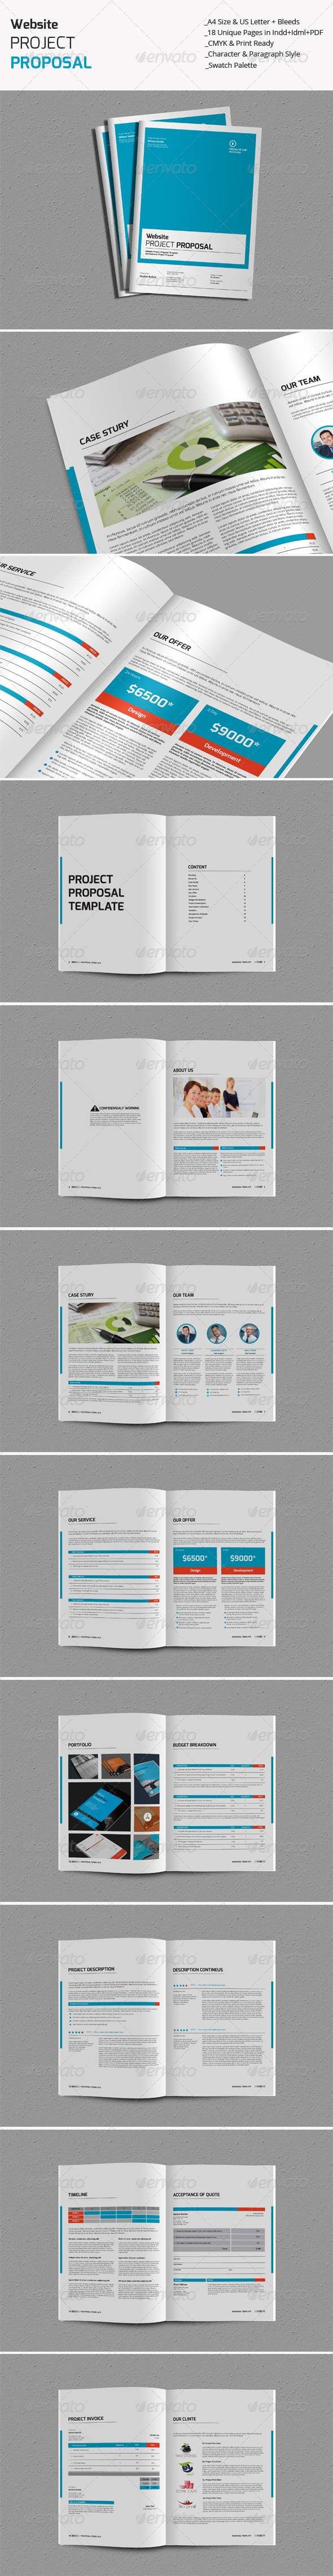 GraphicRiver Website Project Proposal Templates 8322935